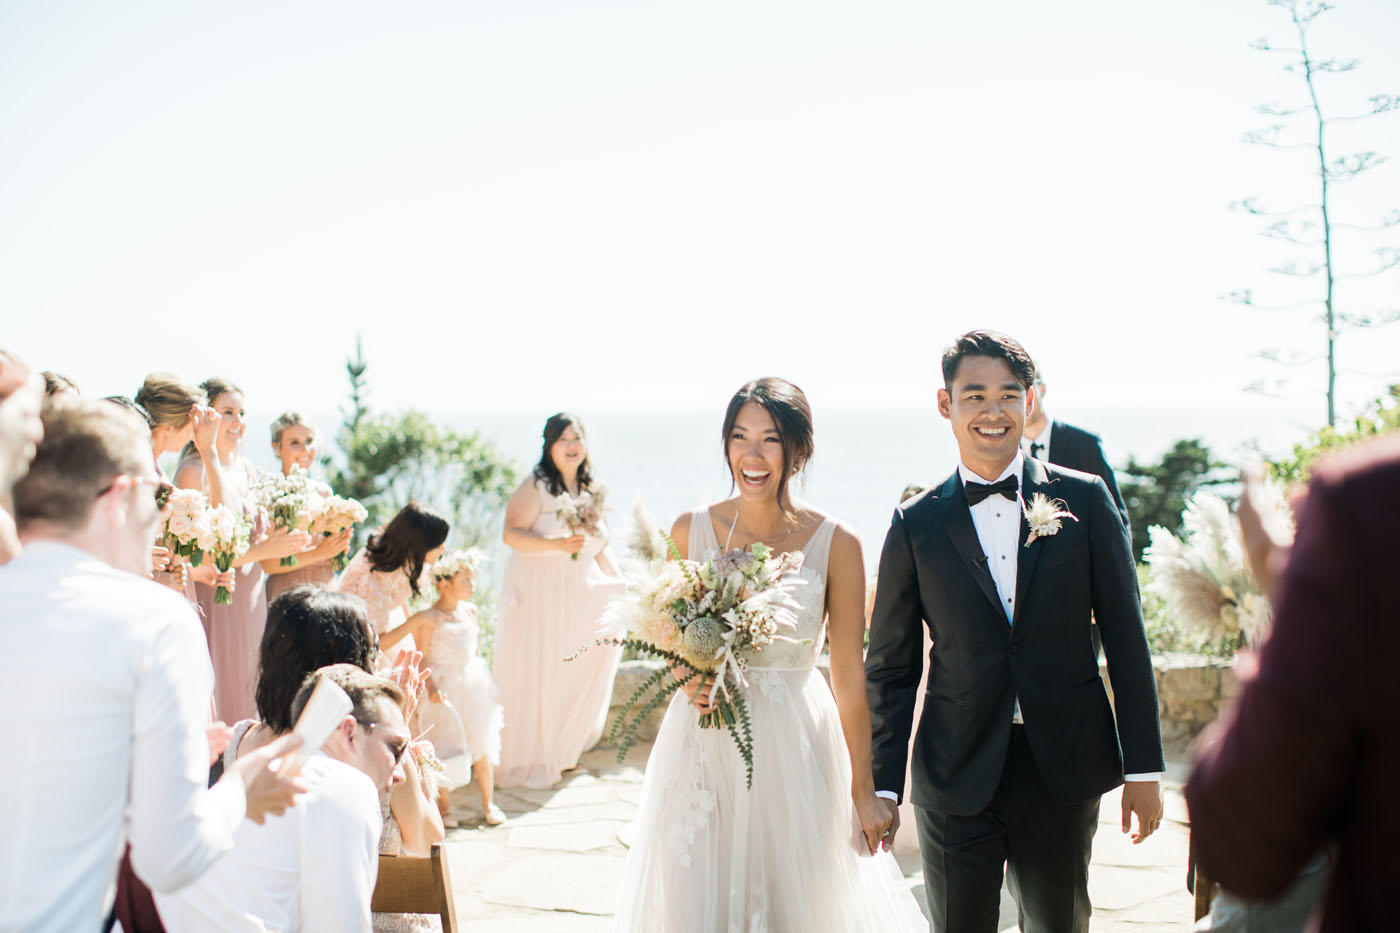 James Loves Brandee: A Coastal Boho Vision at Dipsea Gardens